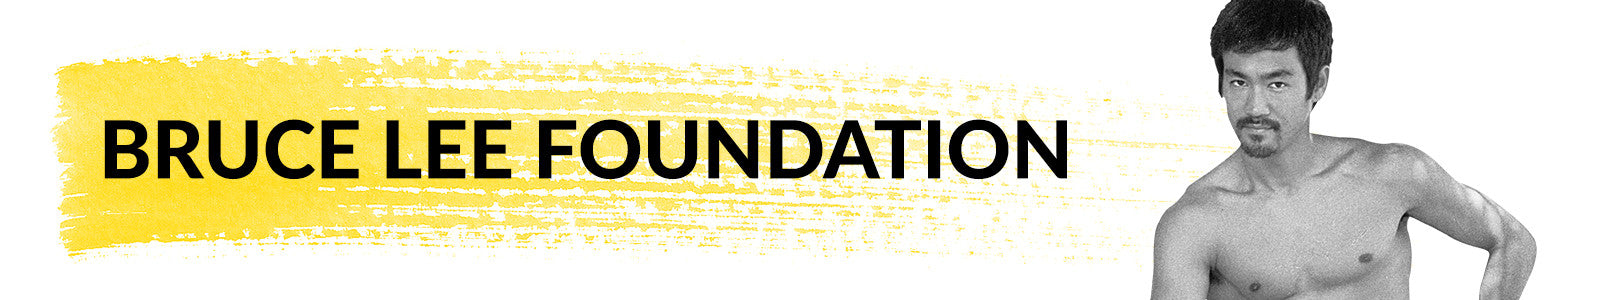 Bruce Lee Foundation | Shop the Bruce Lee Official Store